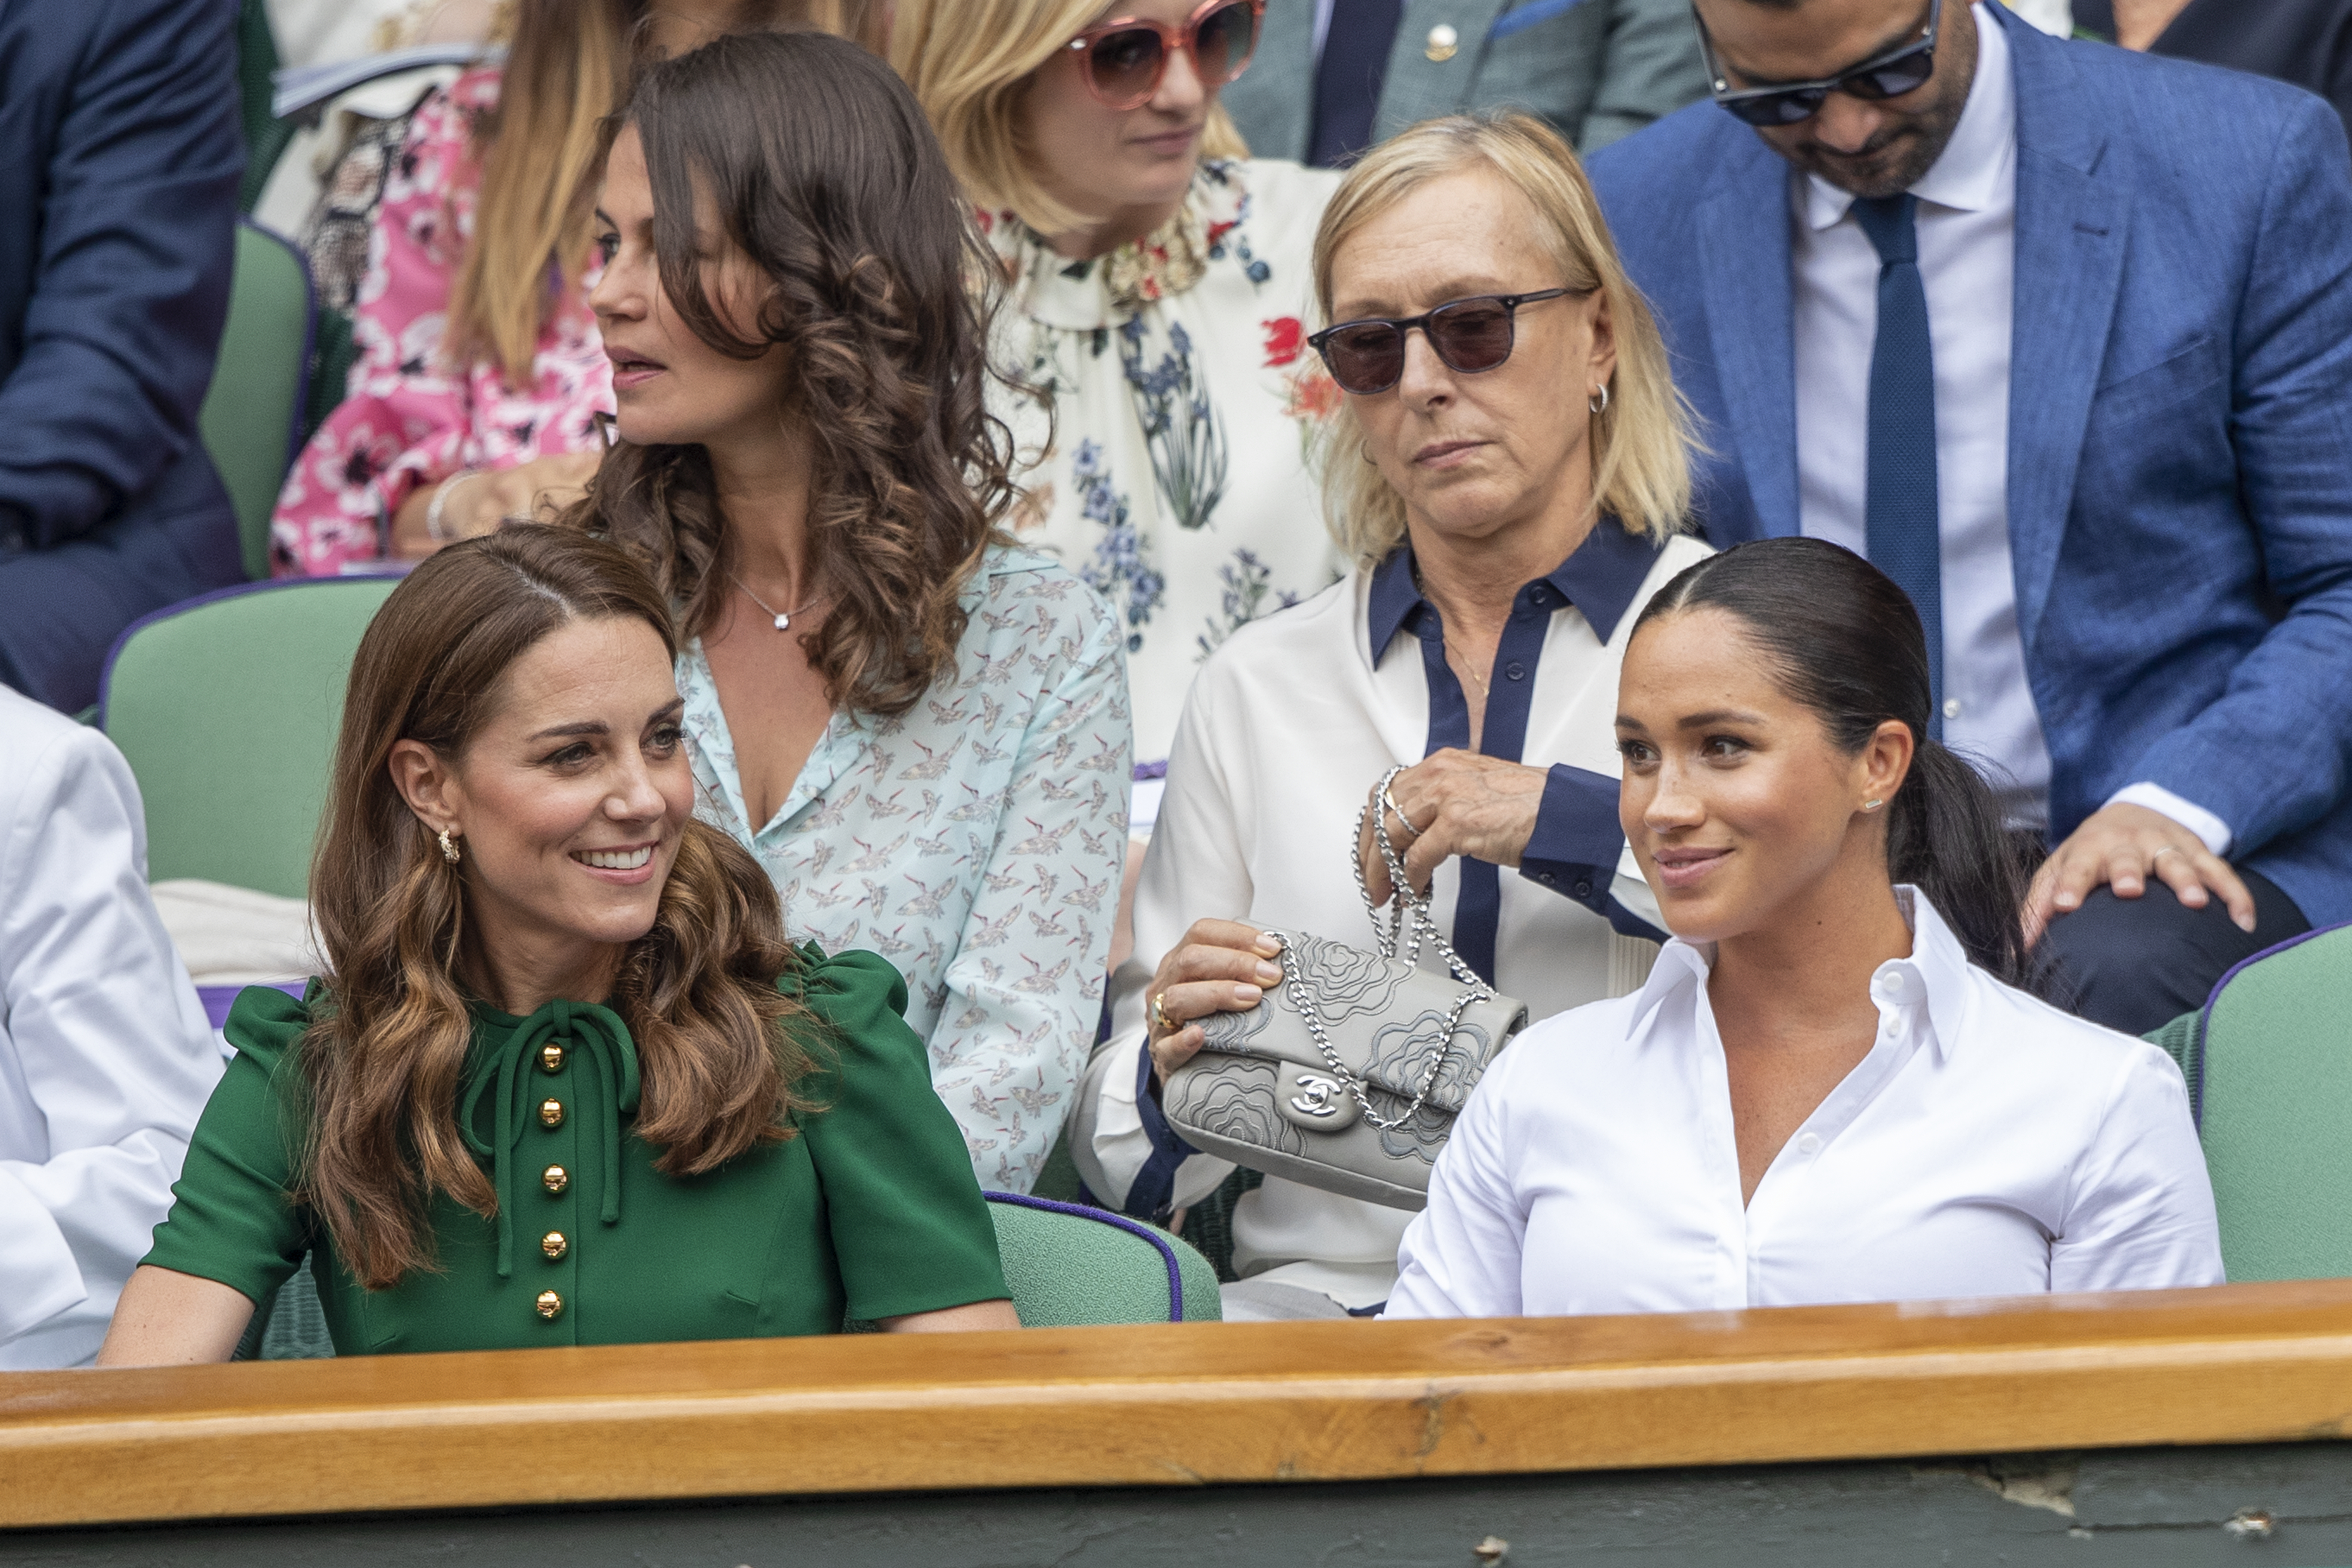 Kate Middleton is reportedly a huge support for Meghan Markle behind the scenes